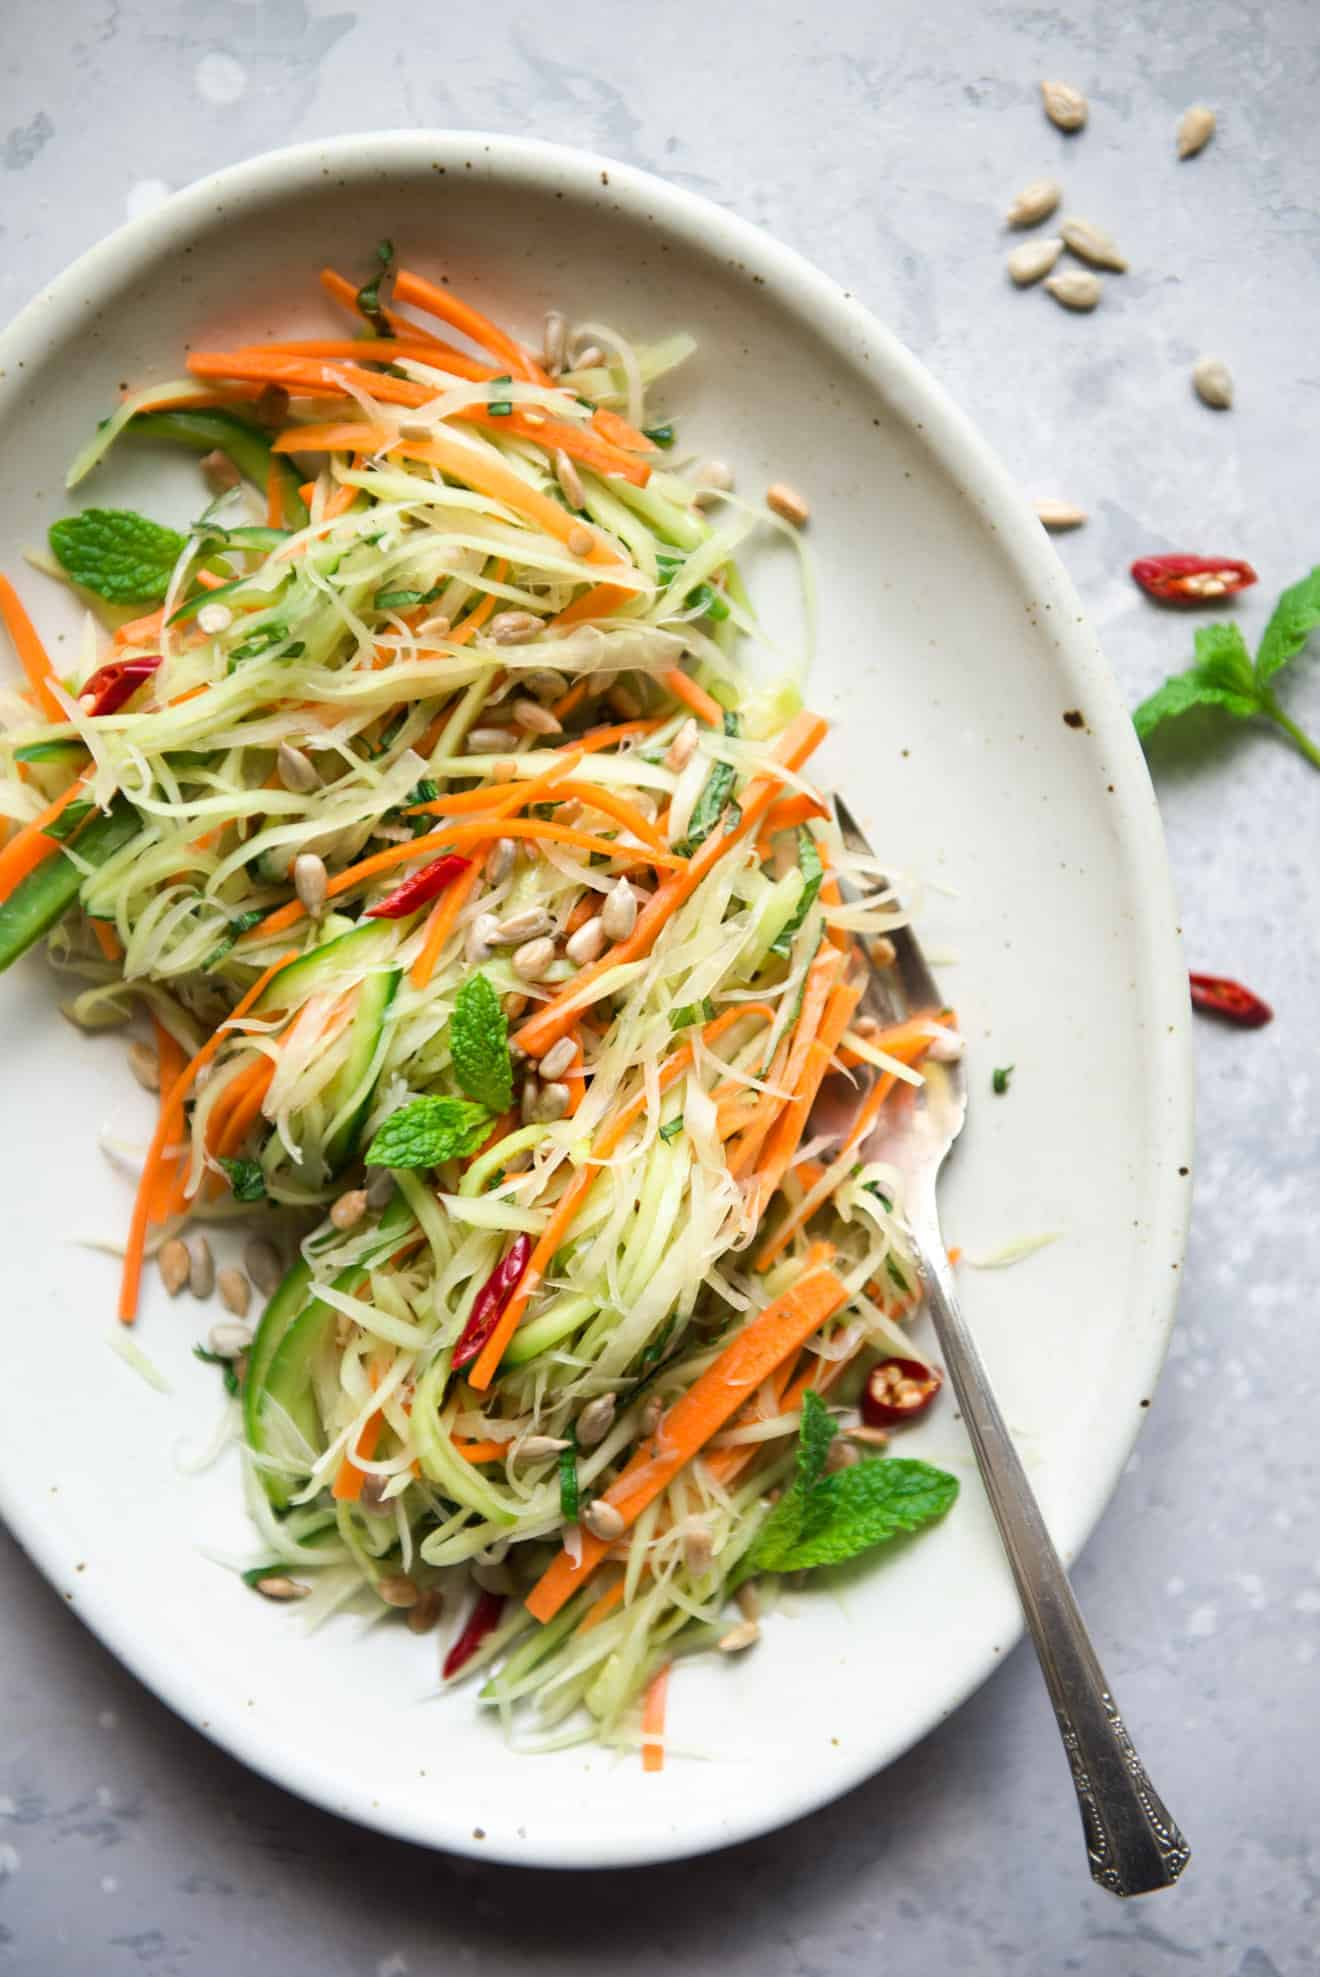 Green Papaya Salad - This vegan green papaya salad is a delicious light salad that is great as an appetizer. It is dressed with a light, tangy dressing made of rice vinegar, garlic, shallots and maple syrup.